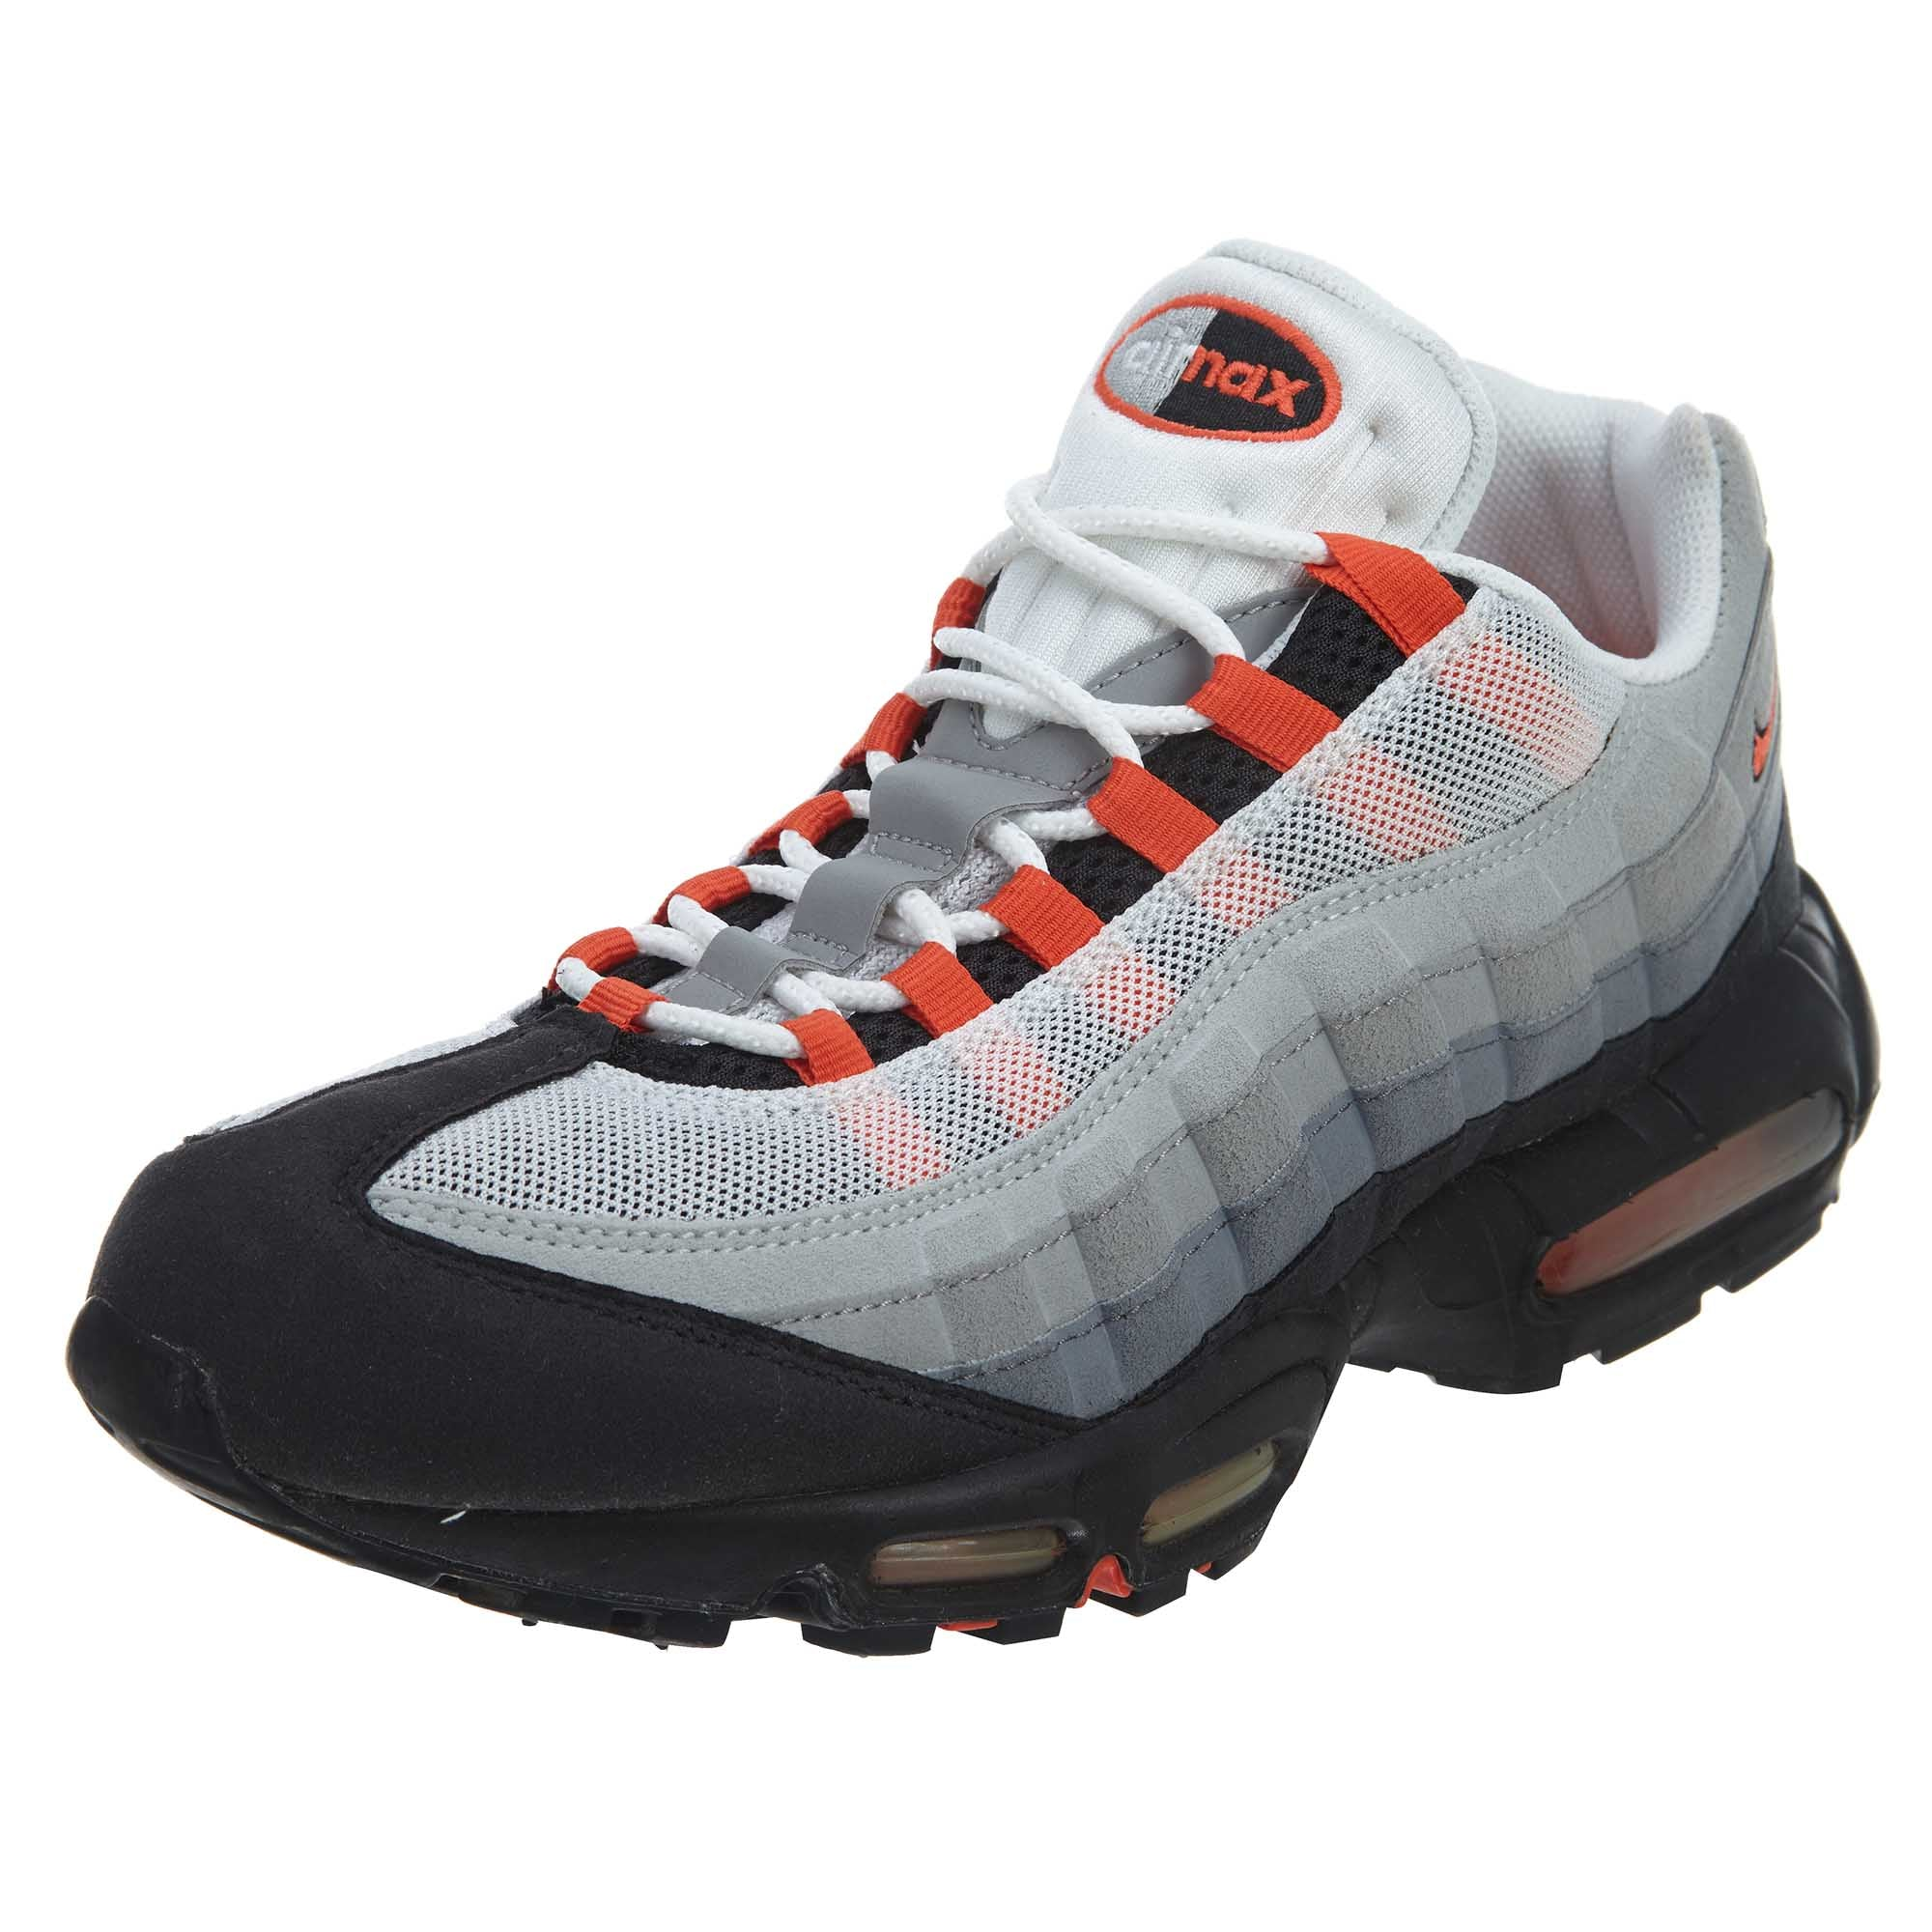 factory price f57bb 39807 Nike Air Max-95 Men s Style  609048-184 · Juicy Sole